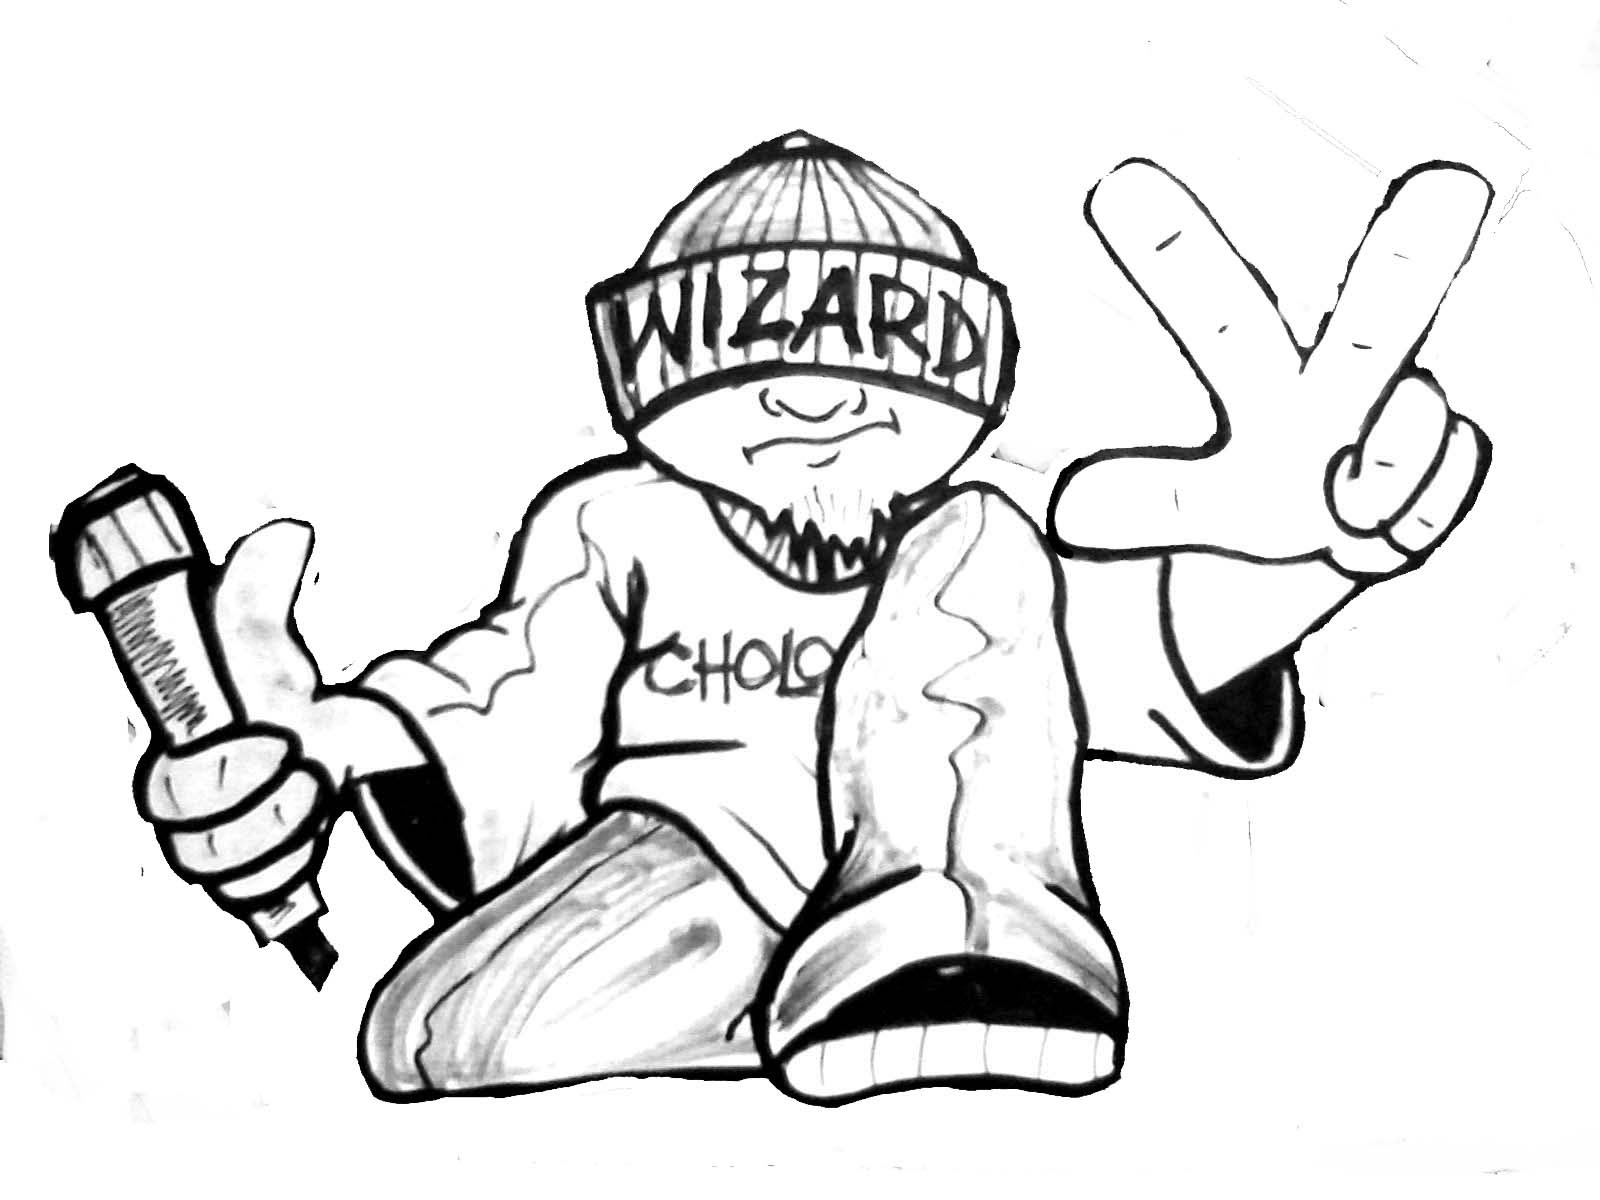 1600x1200 Wizard School Graffiti Drawing A Cholo Character (By Wizard